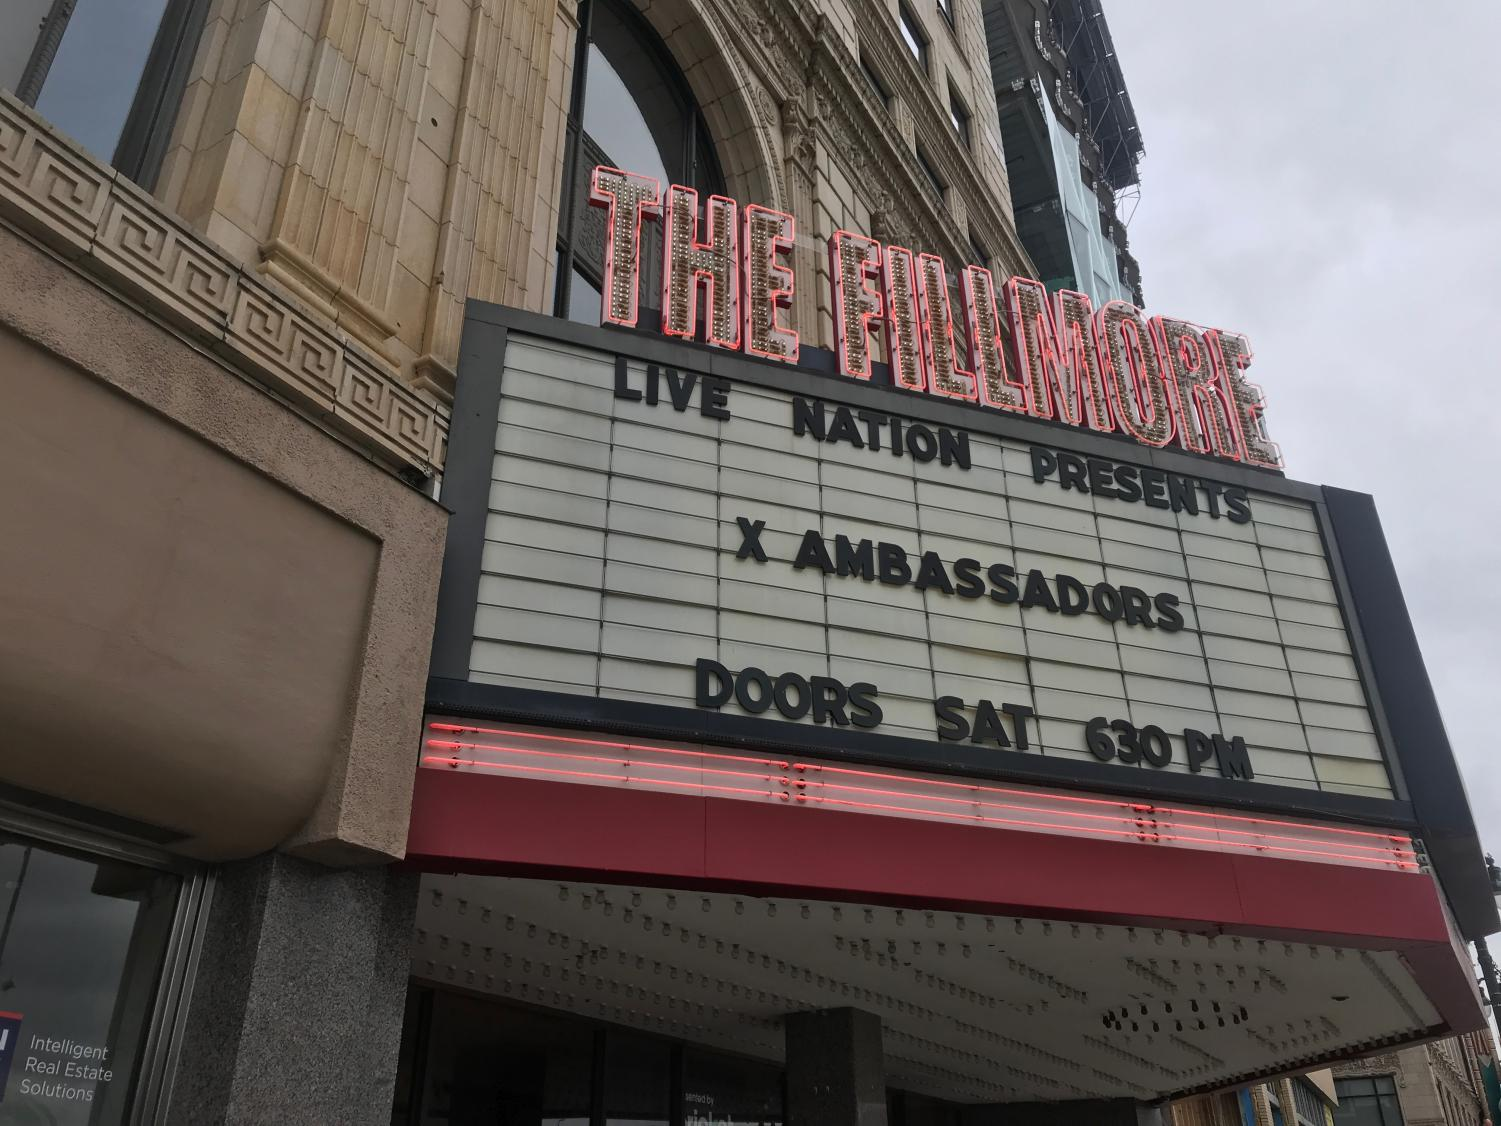 The Fillmore is the new location of Grosse Pointe South's prom.